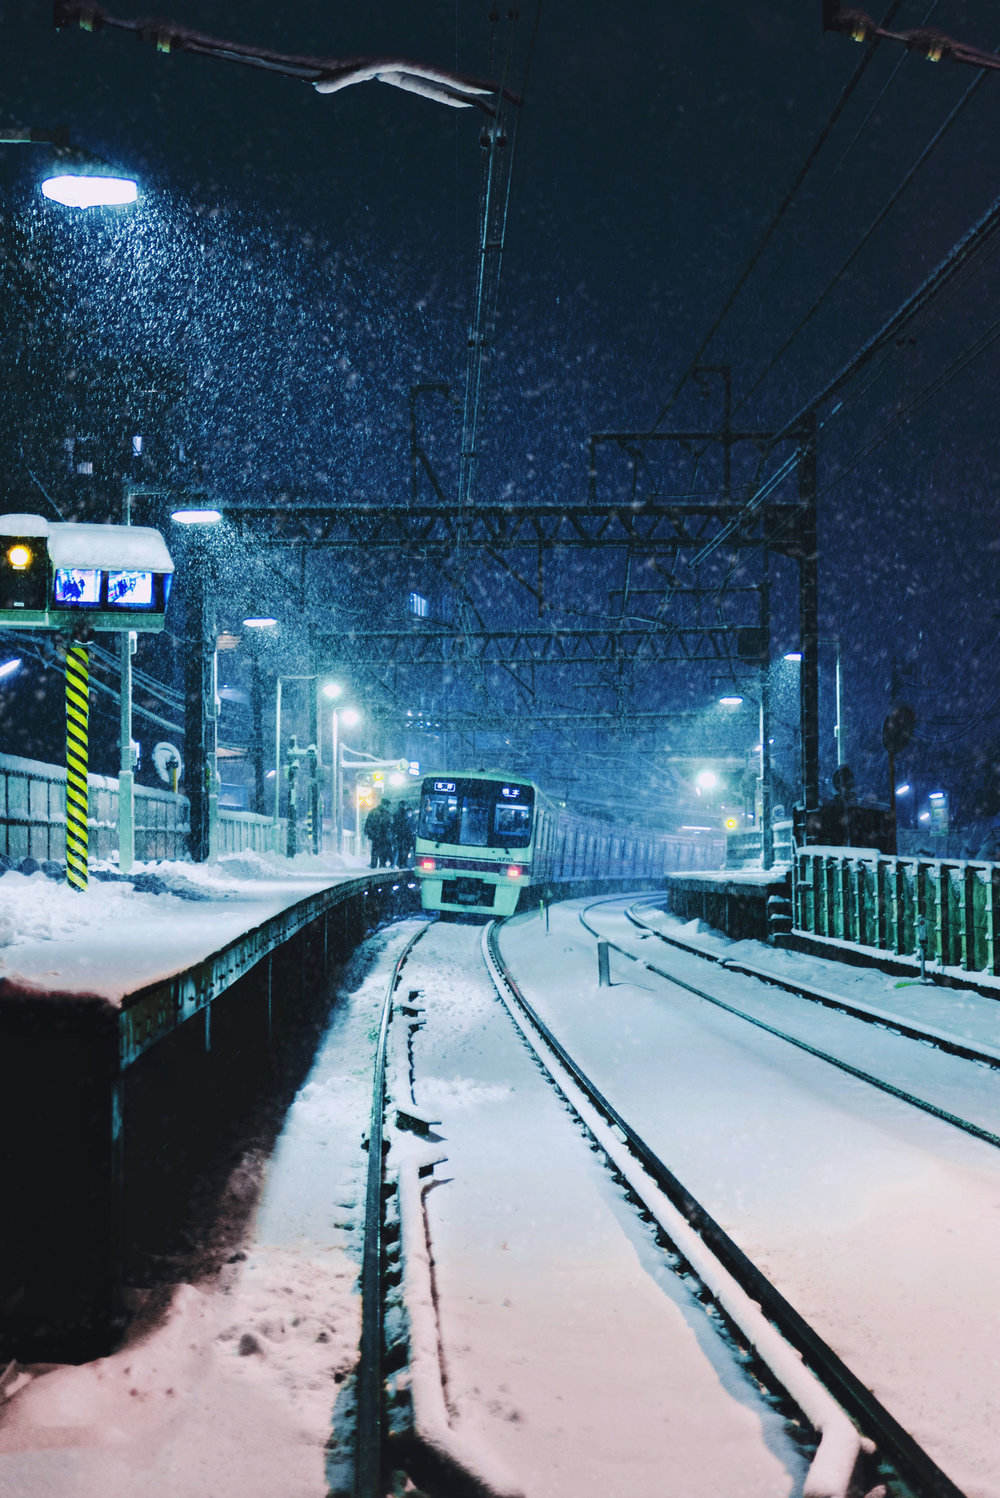 shimotakaido-snow-train-01B.jpg